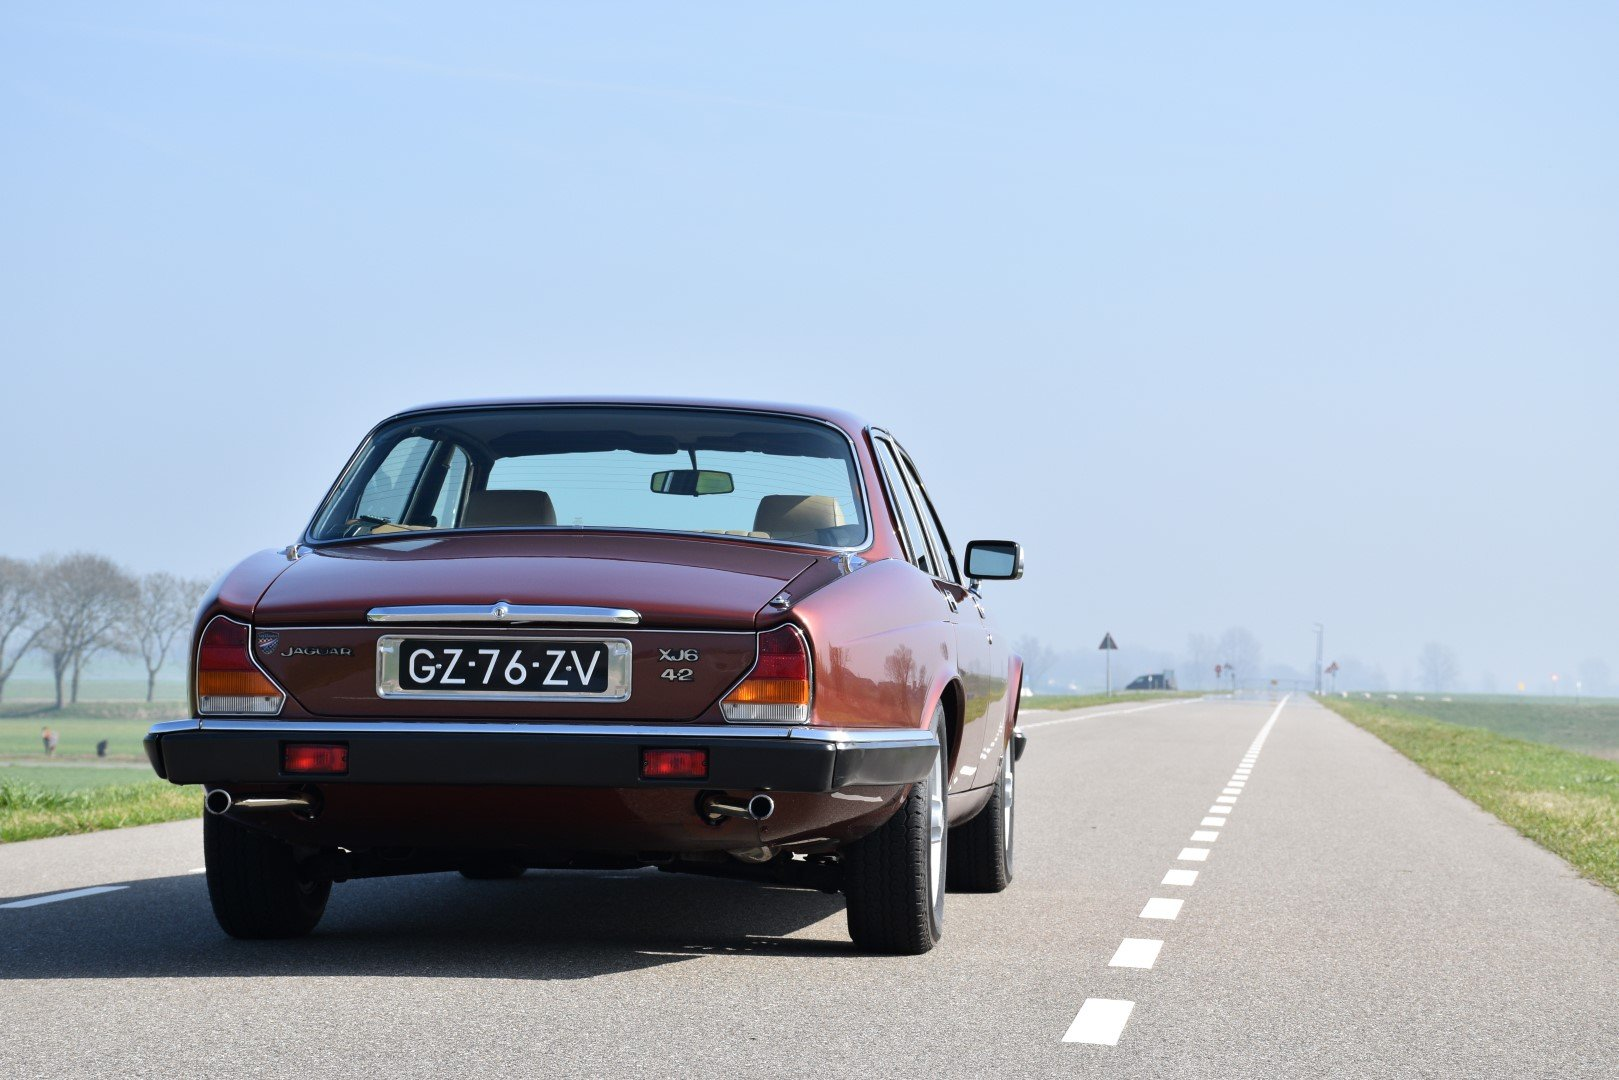 1981 Jaguar XJ6 series III 4.2 For Sale (picture 6 of 6)